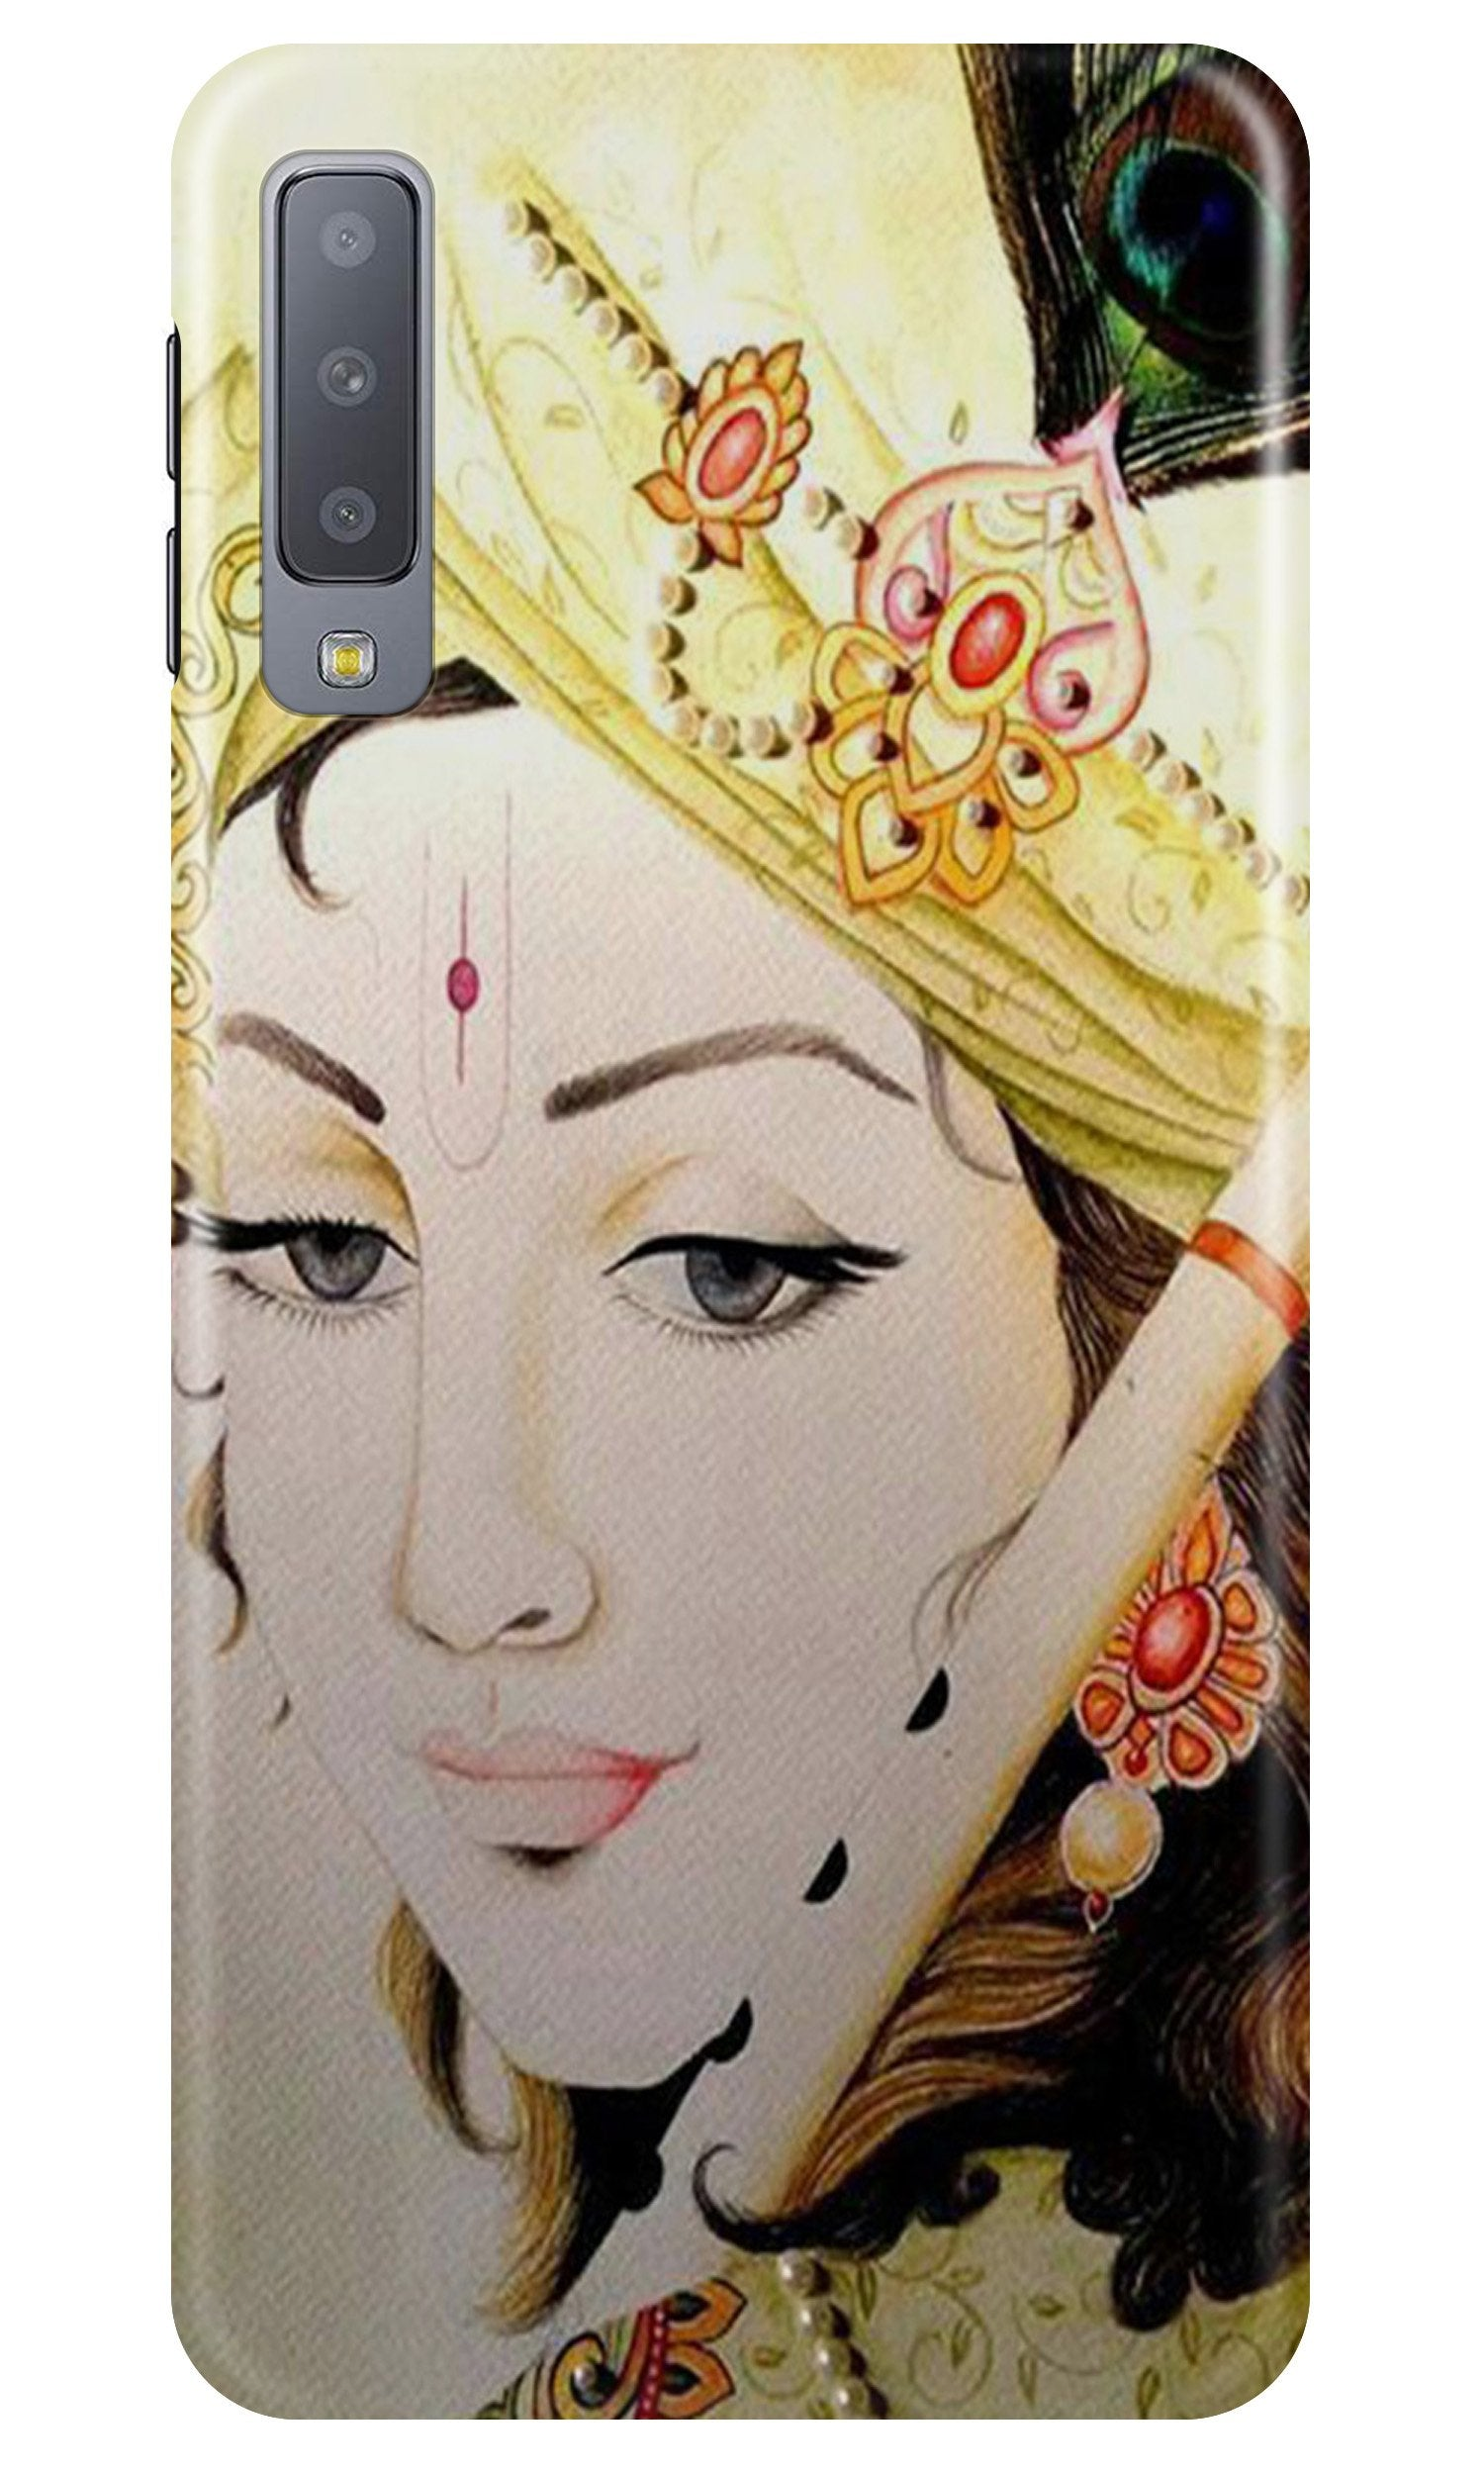 Krishna Case for Samsung Galaxy A7 2018 (Design No. 291)